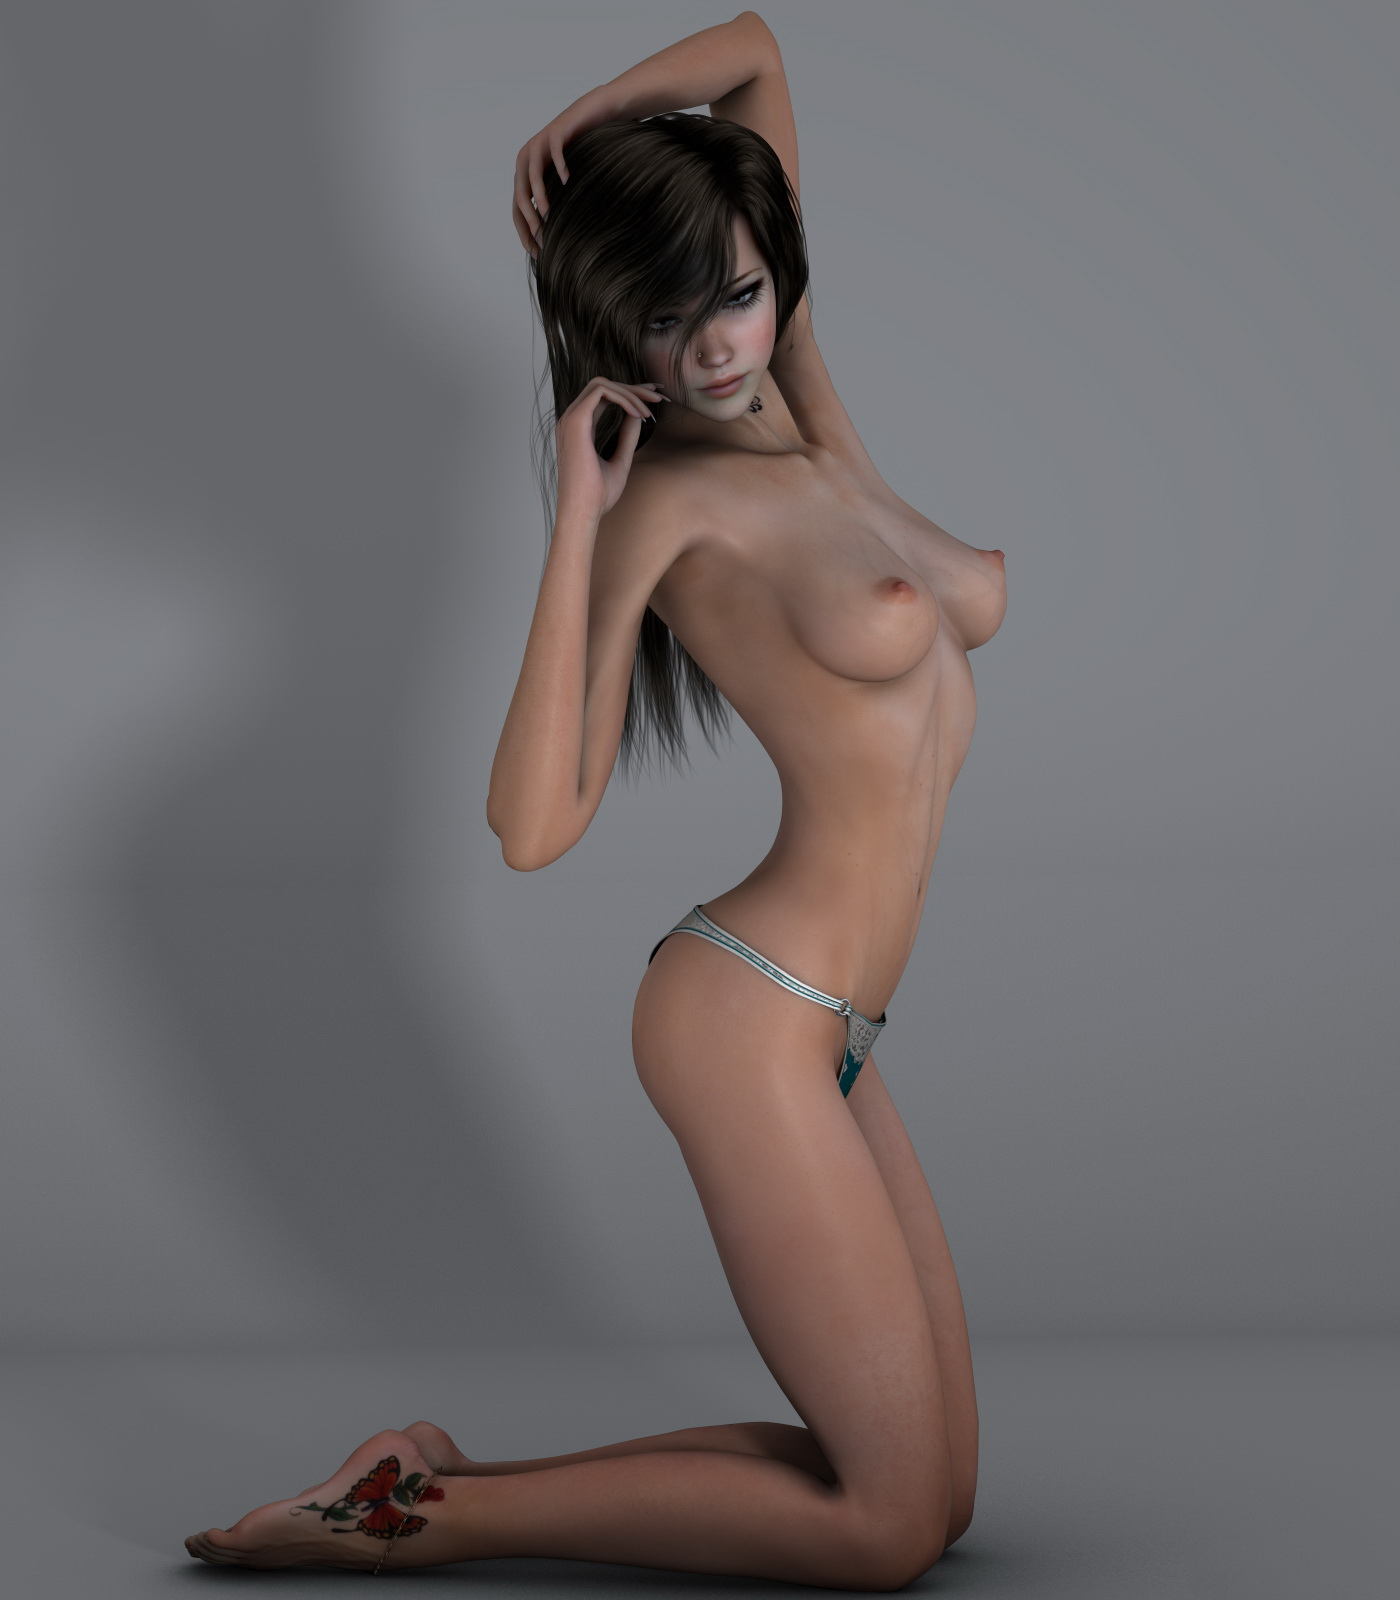 Nude toon girls picture pron pictures